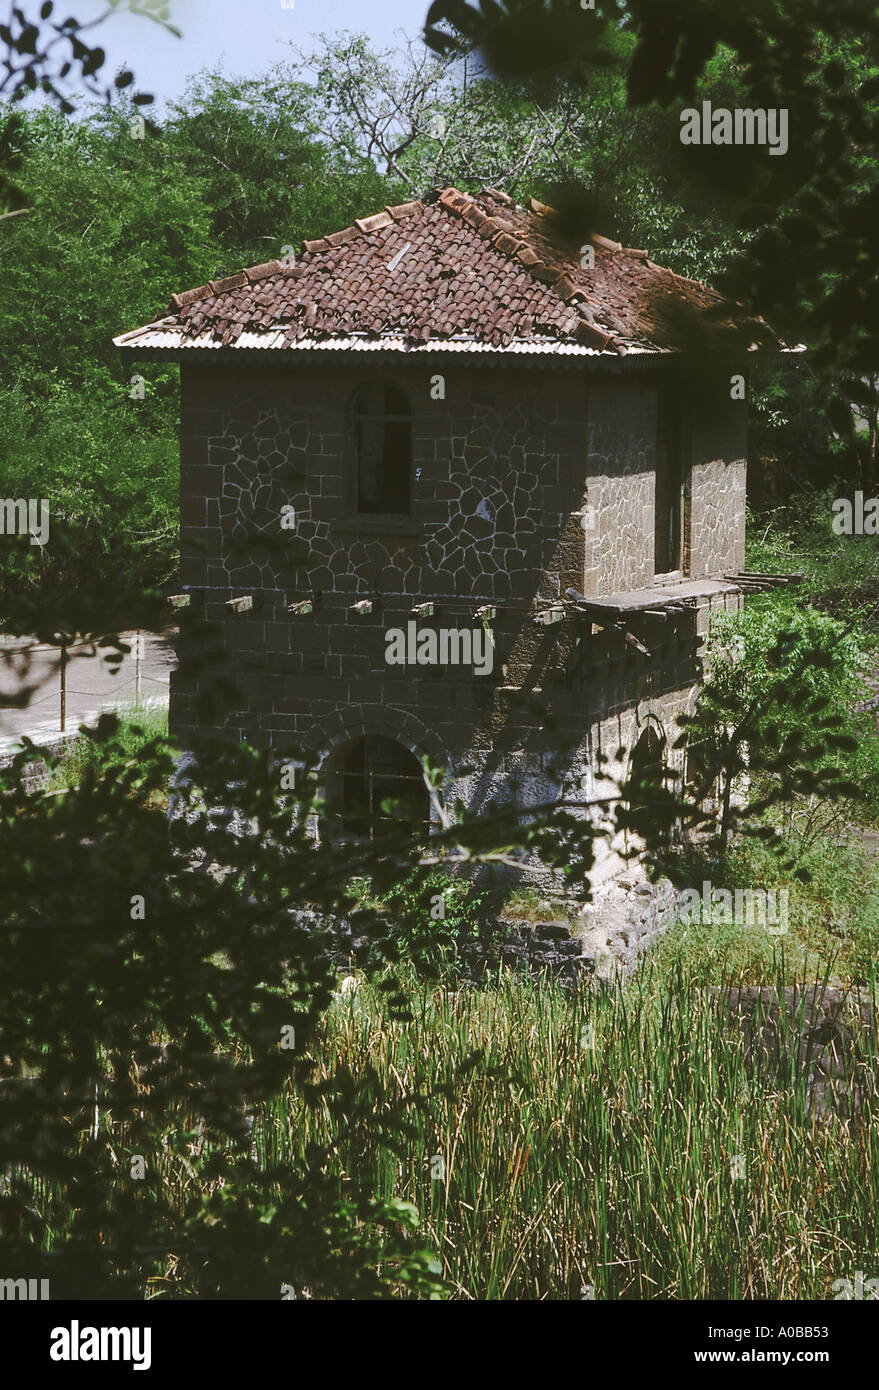 A small hut in a garden. Pune, Maharasthra, India. Stock Photo